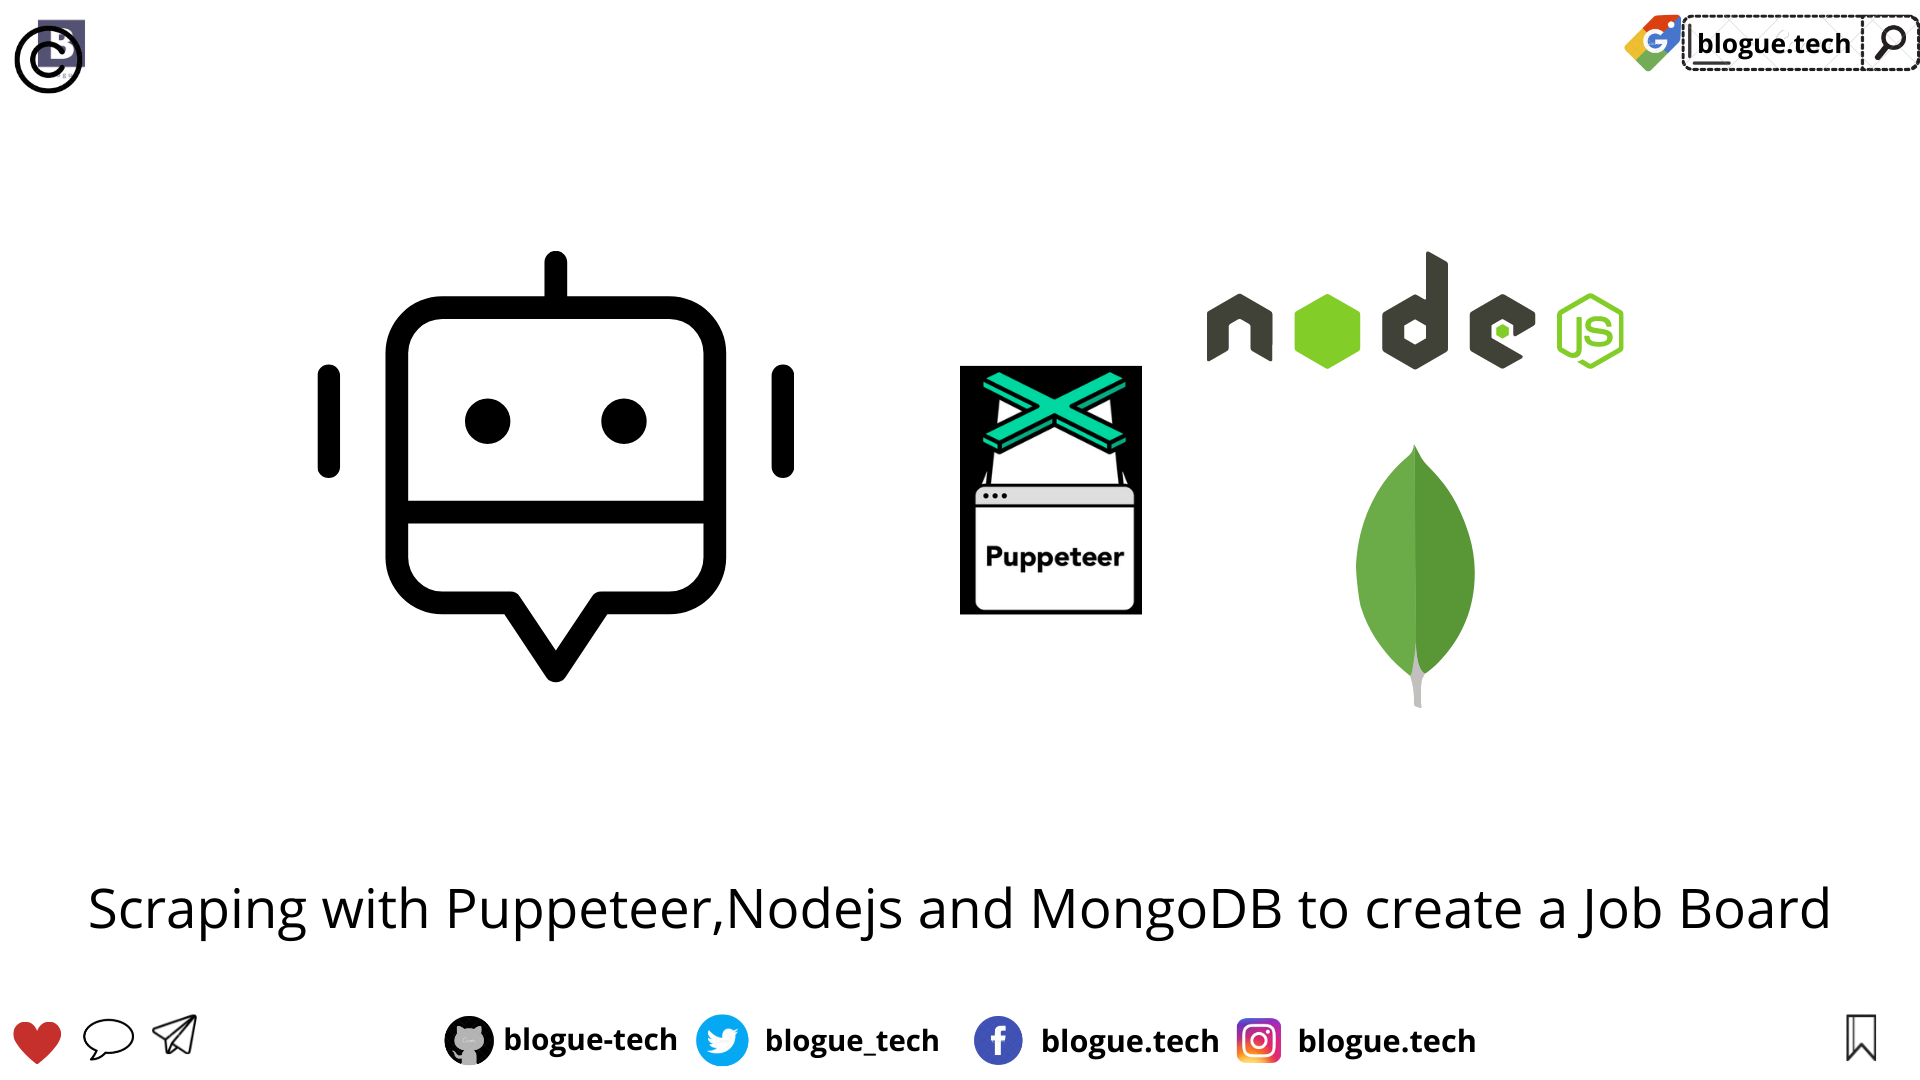 Scraping with Puppeteer,Nodejs and MongoDB to create a Job Board